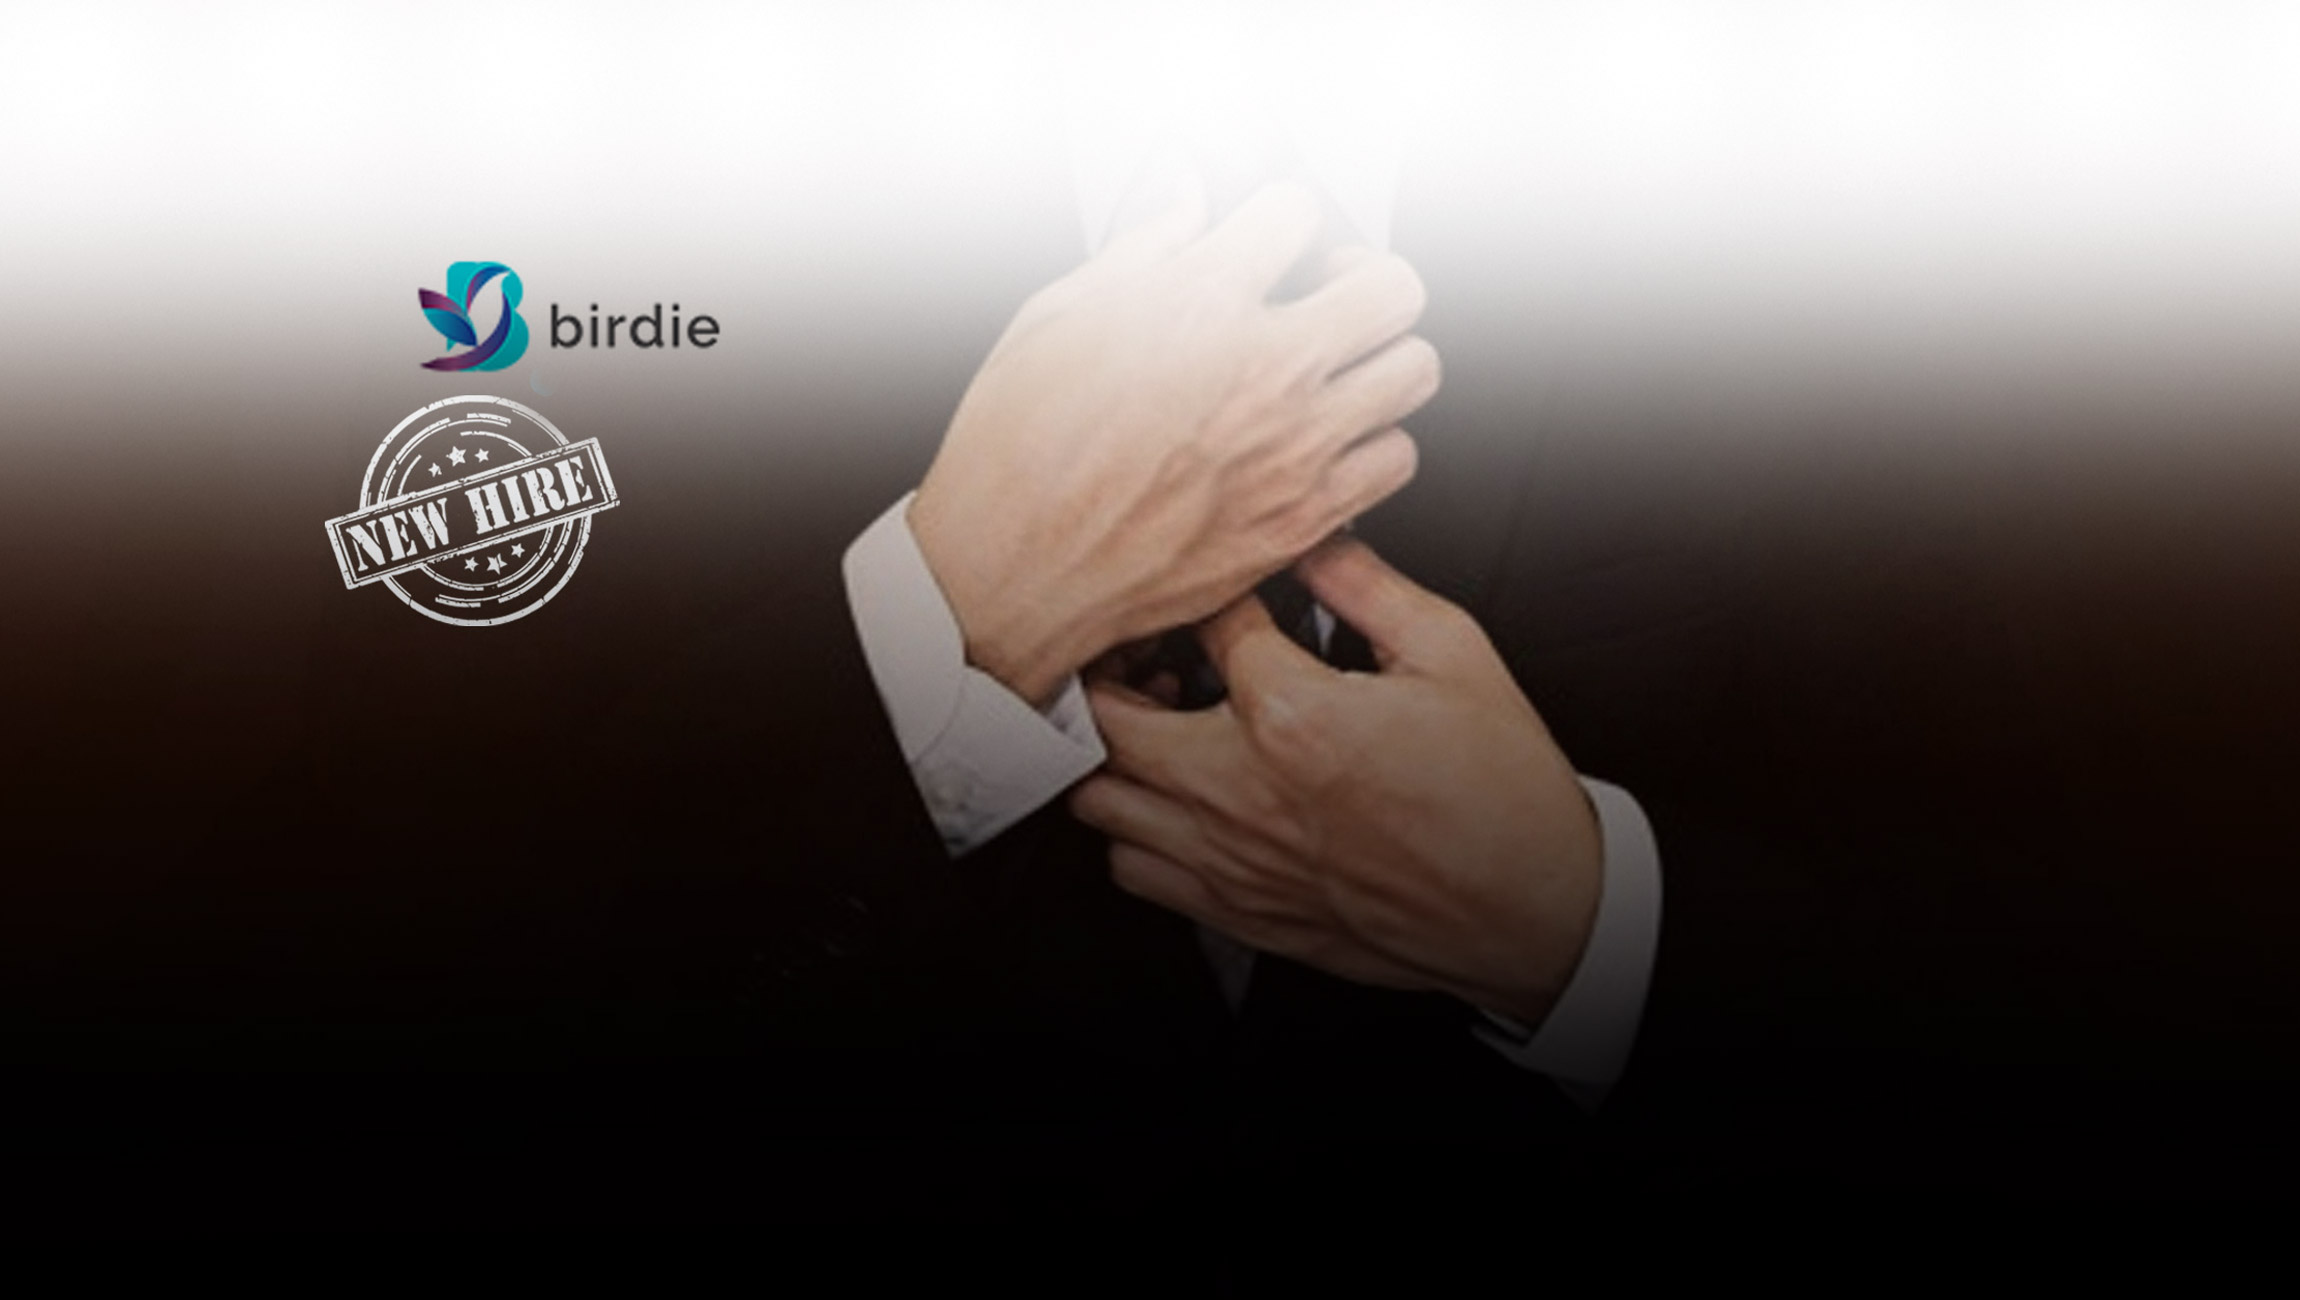 Birdie Announces Appointment of Market Research Veteran Ted Clark as New Chief Operating Officer 2